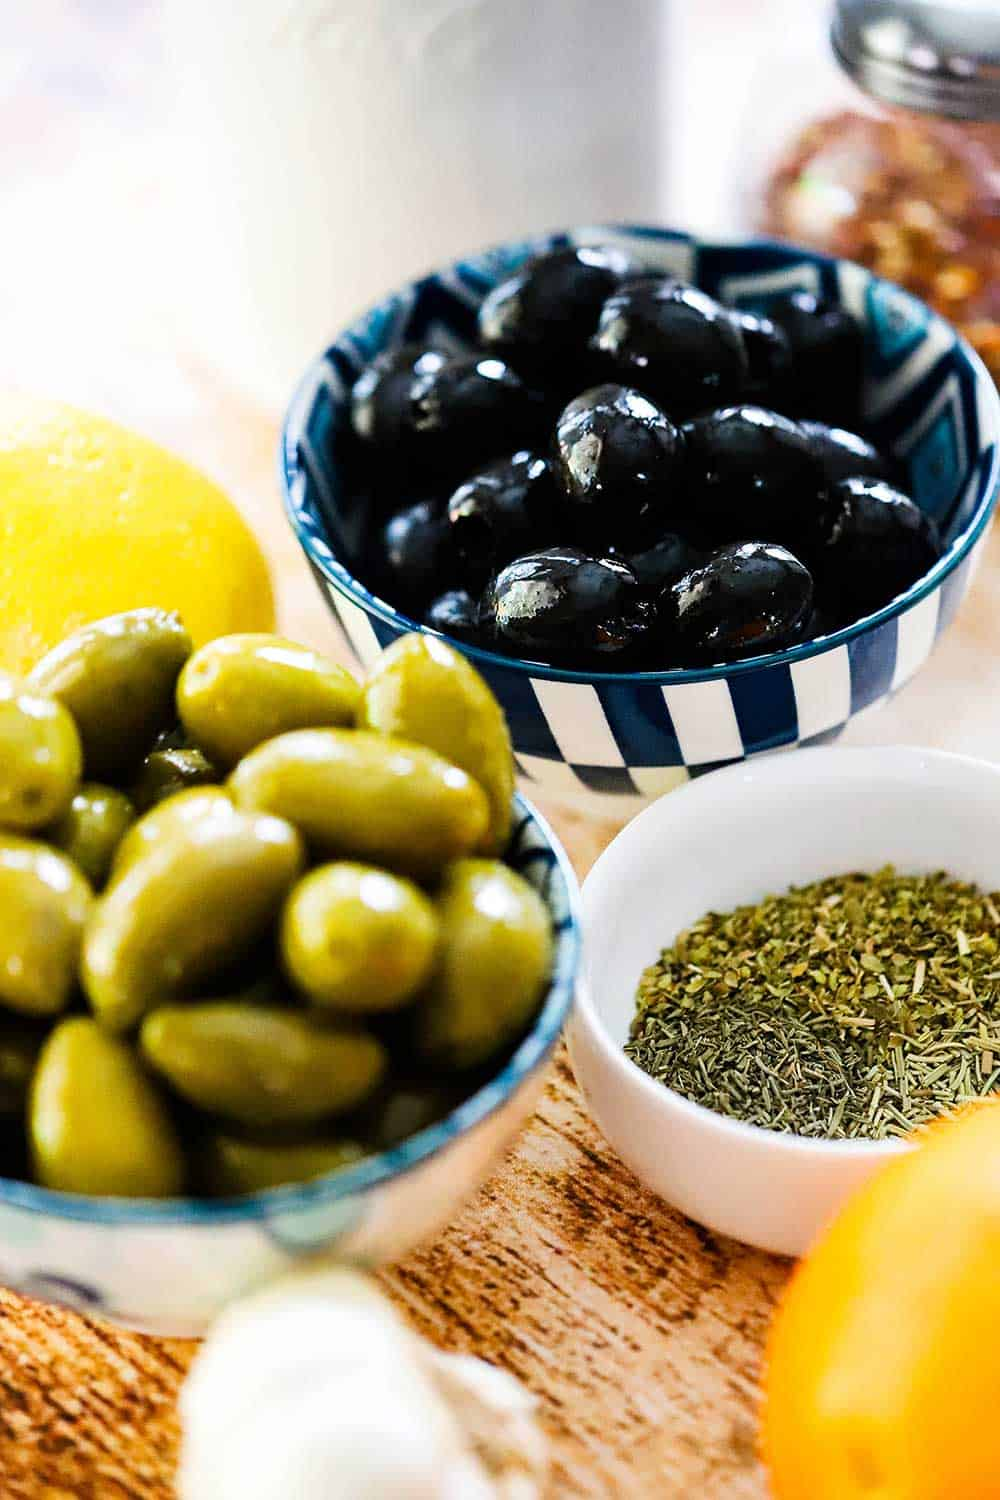 One small bowl holding green olives and another bowl holding black olives surround by dried herbs, an orange, and an olive oil dispenser.